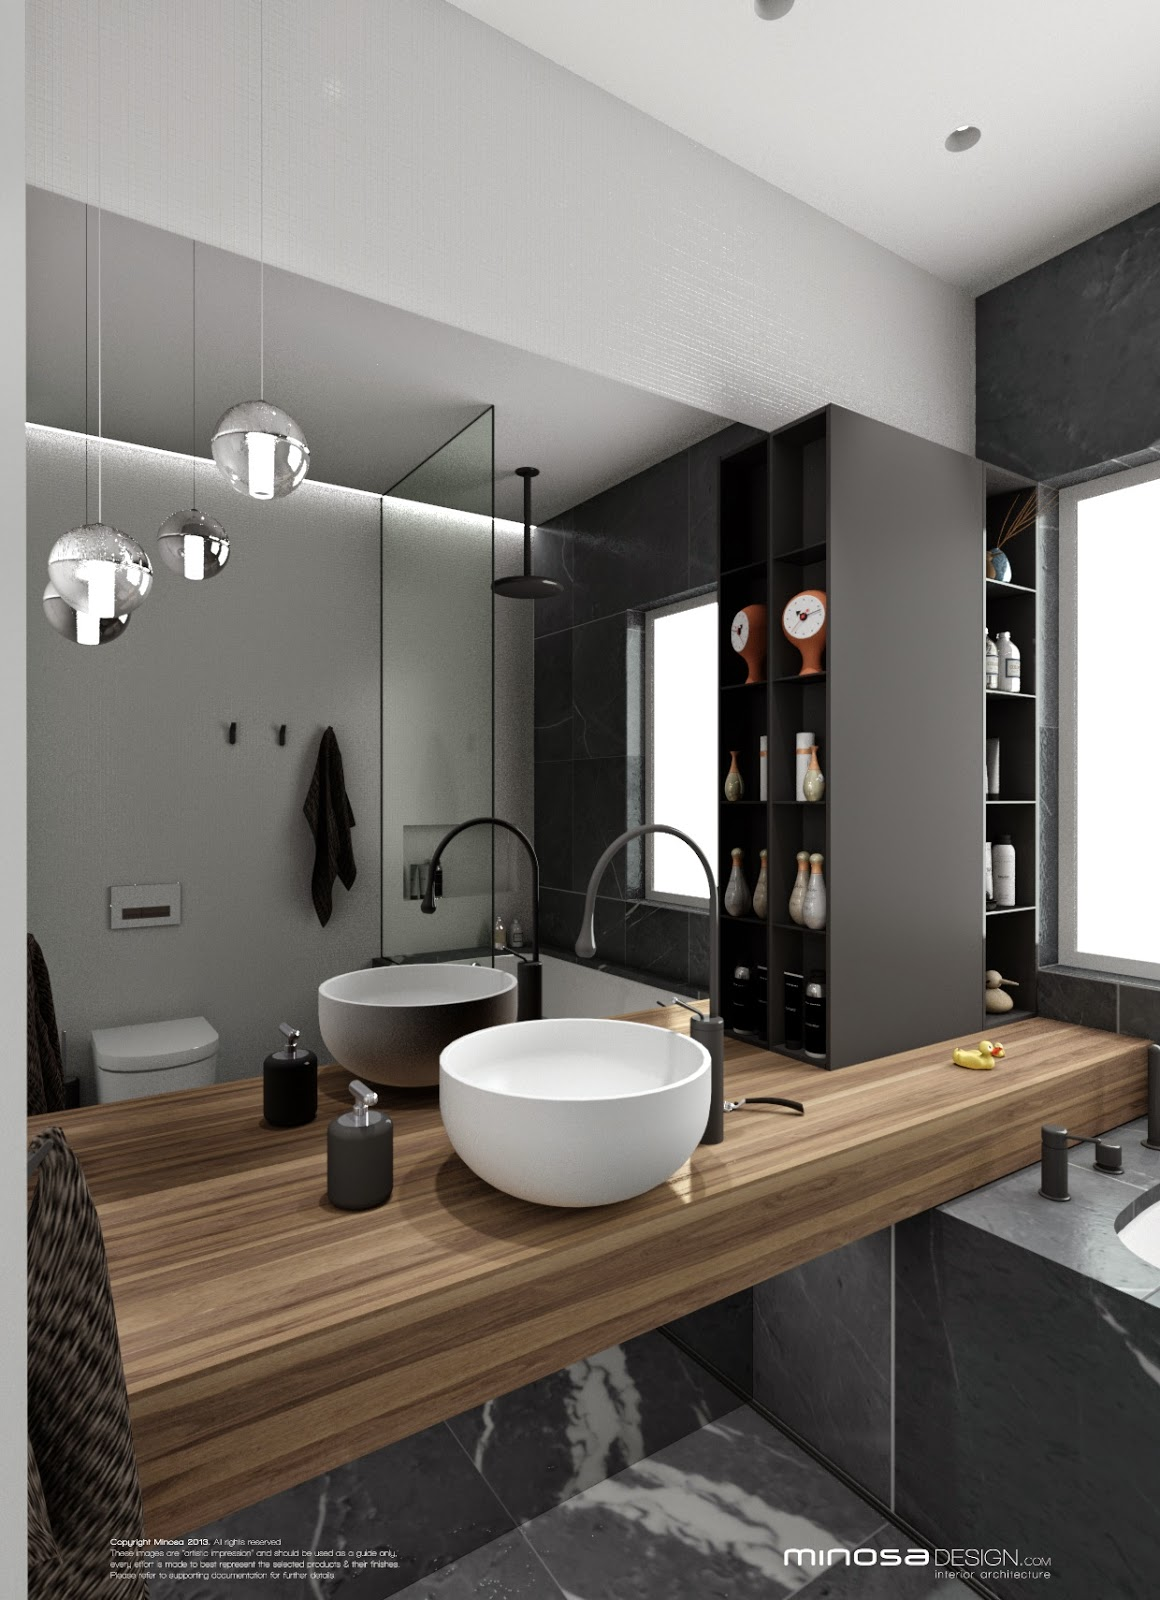 Minosa: Bathroom Design